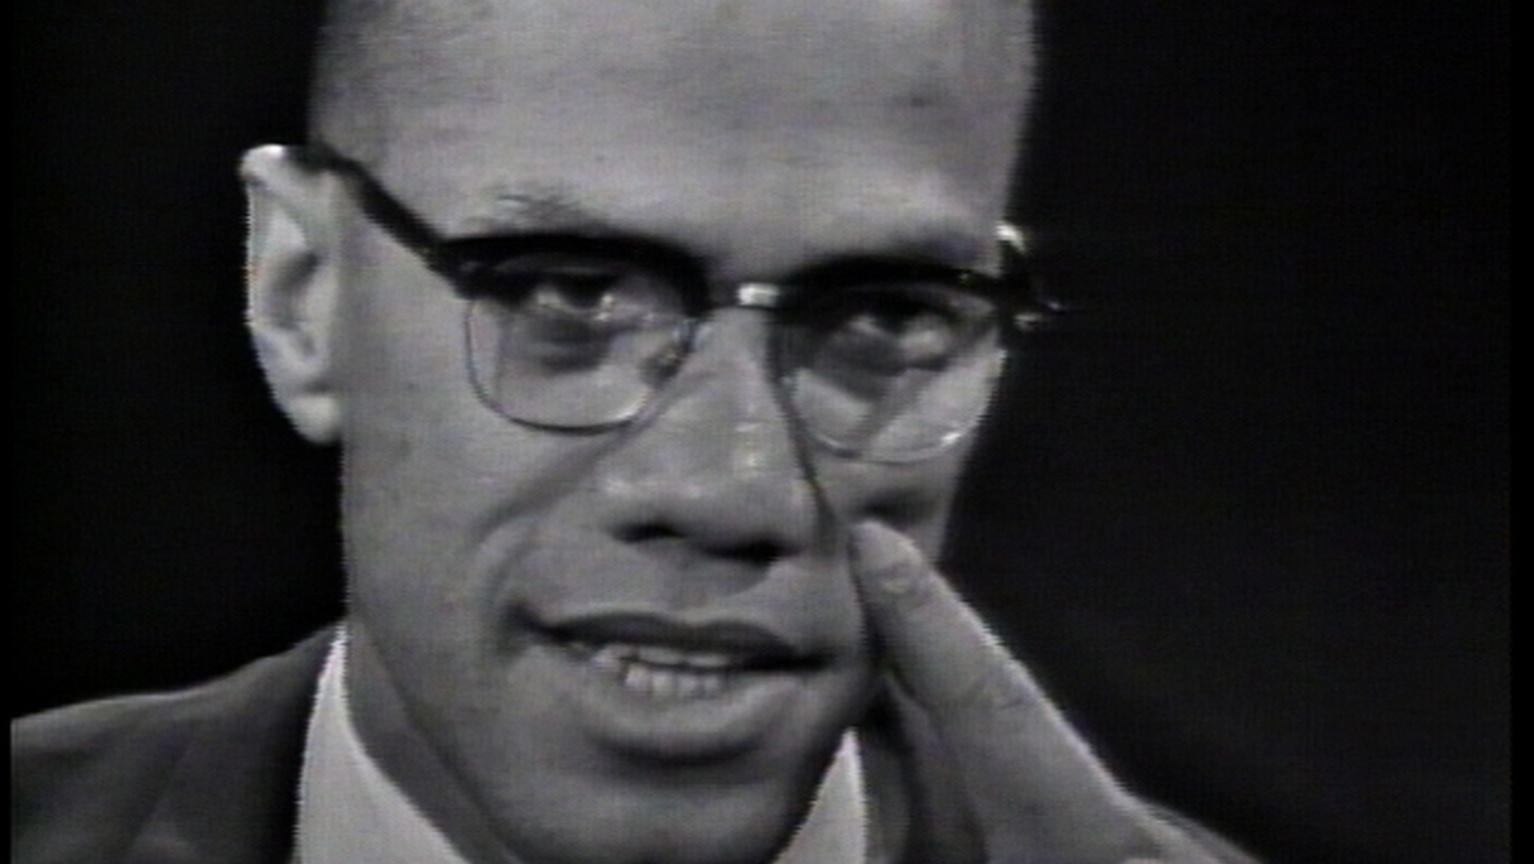 rhetorical analysis of malcolm x s ballot or the bullet Rochelle hernandez andrea terry comm 240-503 10/24/2014 malcolm x: ―the ballot or the bullet‖ the artifact that will be analyzed in this essay will be malcolm x's ―the ballot or the bullet‖ speech, articulated on april 12, 1964.